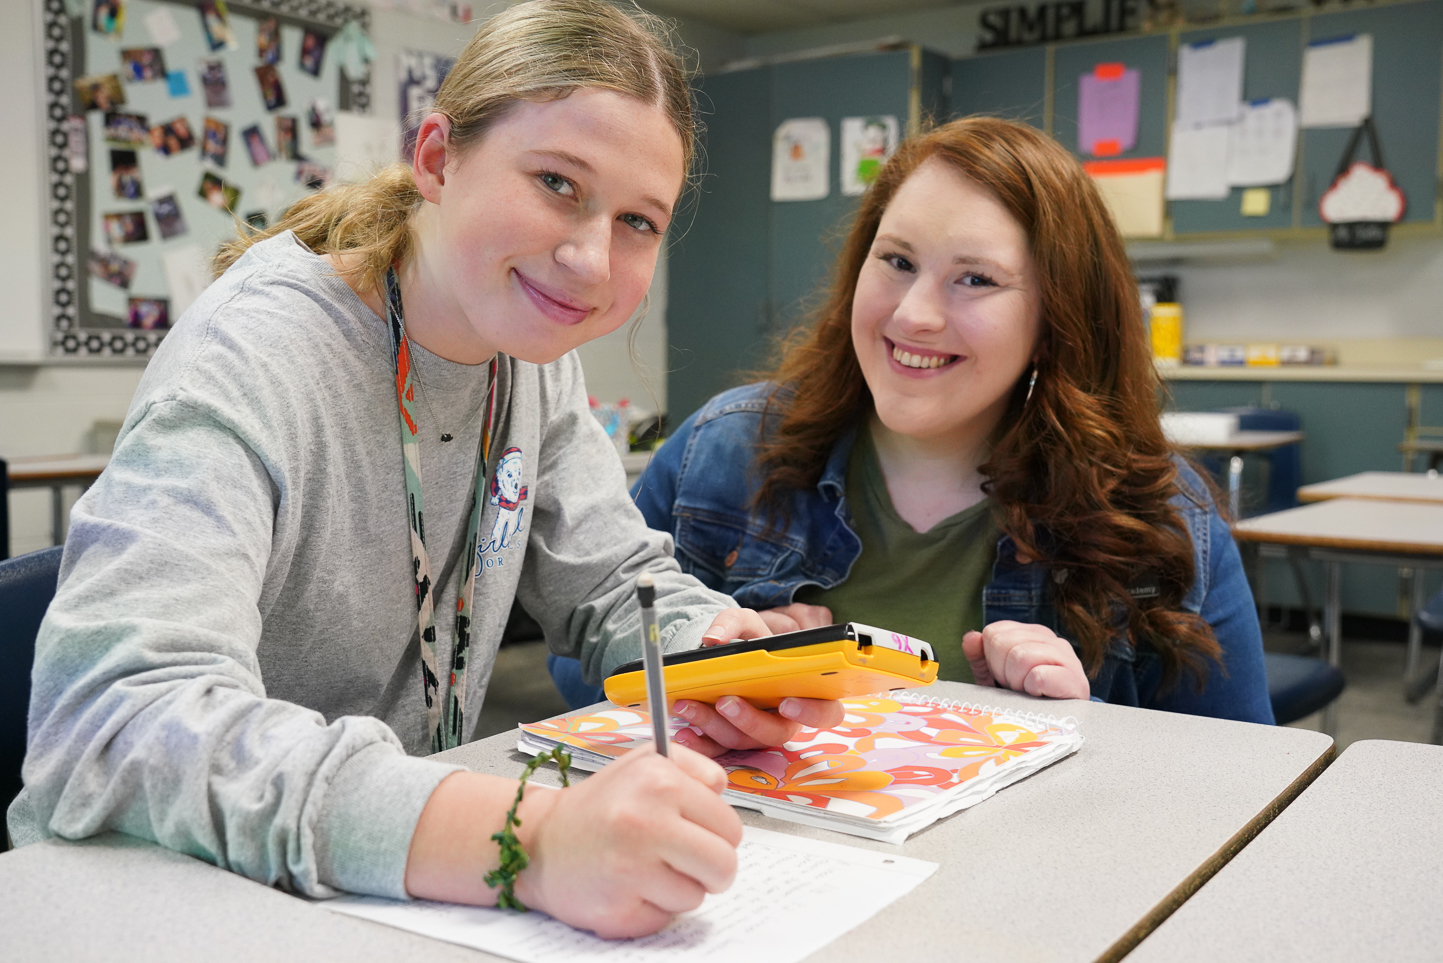 """Union High School Freshman Academy – Kelsey Fallis, Math Math teacher Kelsey Fallis has been named 2019-2020 Teacher of the Year for the Union High School Freshman Academy. She has been with Union since 2015. """"As long as I can remember, I have always wanted to be a teacher,"""" Fallis said. """"While growing up, I was inspired by several teachers. One of those inspirational teachers was while I was in middle school. She was one of those teachers who went above and beyond to build a trusting relationship with me. Every day, she met with me making sure that I understood my school assignments. Every day she also was encouraging me to do my best. She made me feel special.  While I was attending high school, I got pregnant with my son. As a soon to be parent, many teachers I encountered were very discouraging. These were the kind of teachers who gave up on students like me. As I fought to stay in school, I quickly learned that I needed support and guidance from educators. I came to realize that my son was going to depend on me and I needed to succeed for my son. As I navigated through my sophomore year of high school, I found teachers who would support me. They supported me because I would not allow my situation to be an excuse.  """"Those teachers who invested in me, taught me a valuable lesson when I became an educator. Investing in your students and building a relationship with them creates a student willing to learn. The students will say they are fine and won't admit they need help, but they do. When you invest in them, they become learners. I want all my students to become learners and feel like they are someone special. Invested teachers taught me how to succeed and I want to do the same for my students."""" Her favorite subject is math.  """"Math is fascinating and math is life,"""" Fallis said. """"Everything we do in the world is mathematical.  """"Every August, students dread walking into my classroom. They have entered the classroom thinking that they are going to fail math because """